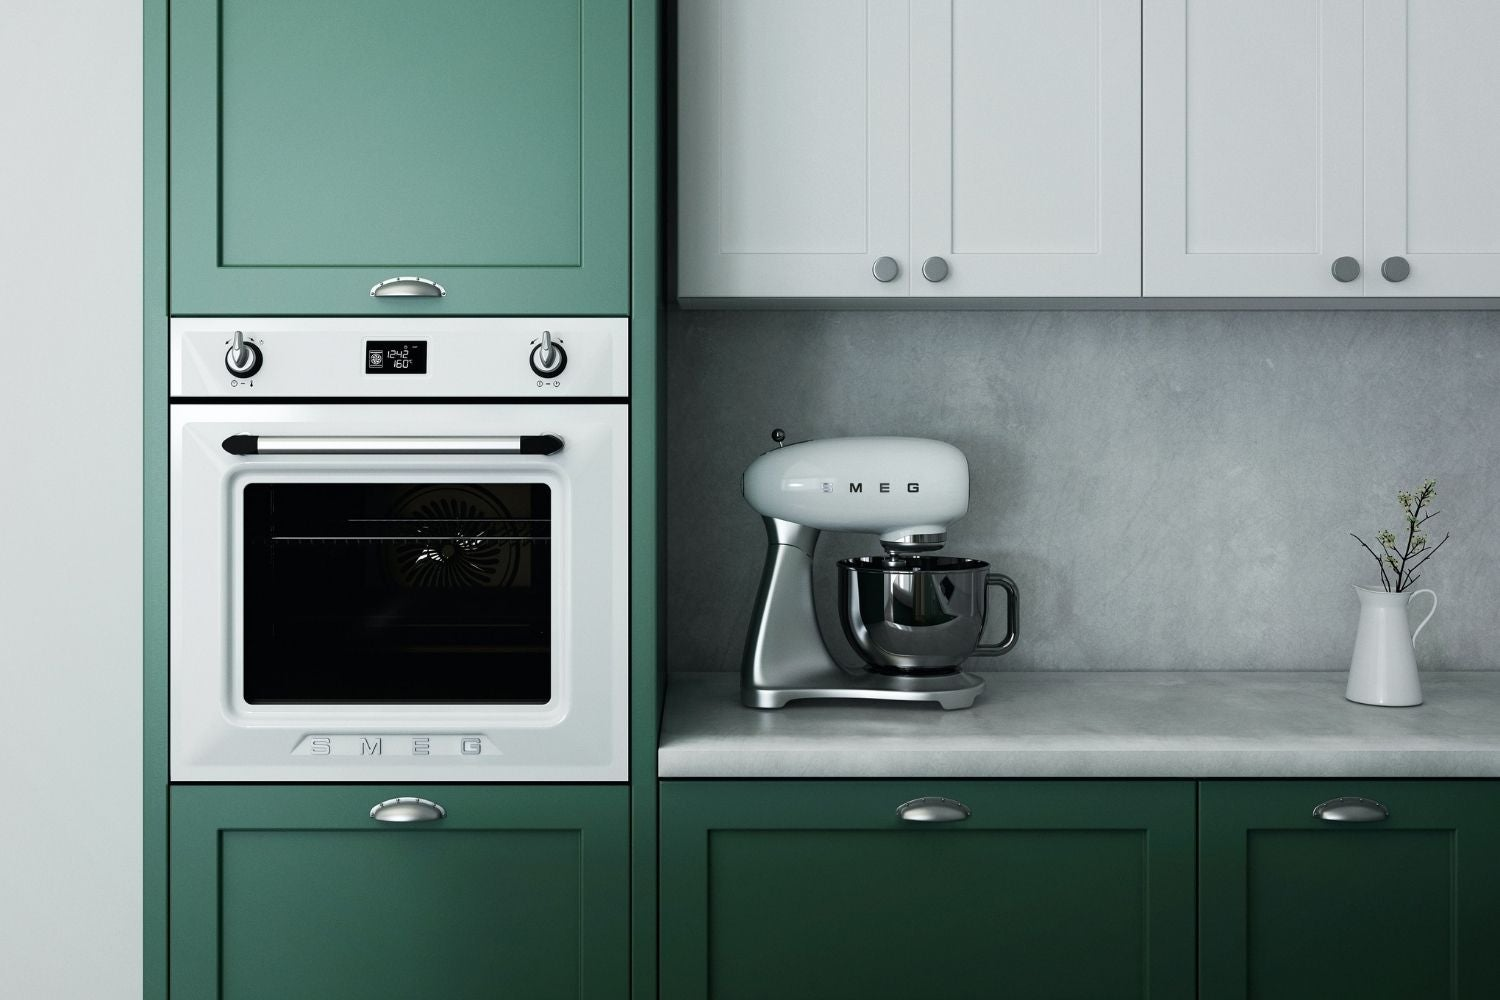 The Best Black Friday Appliance Deals 2020 The Best Deals And Sales On Appliances From Samsung Ge Whirlpool And More Bob Vila